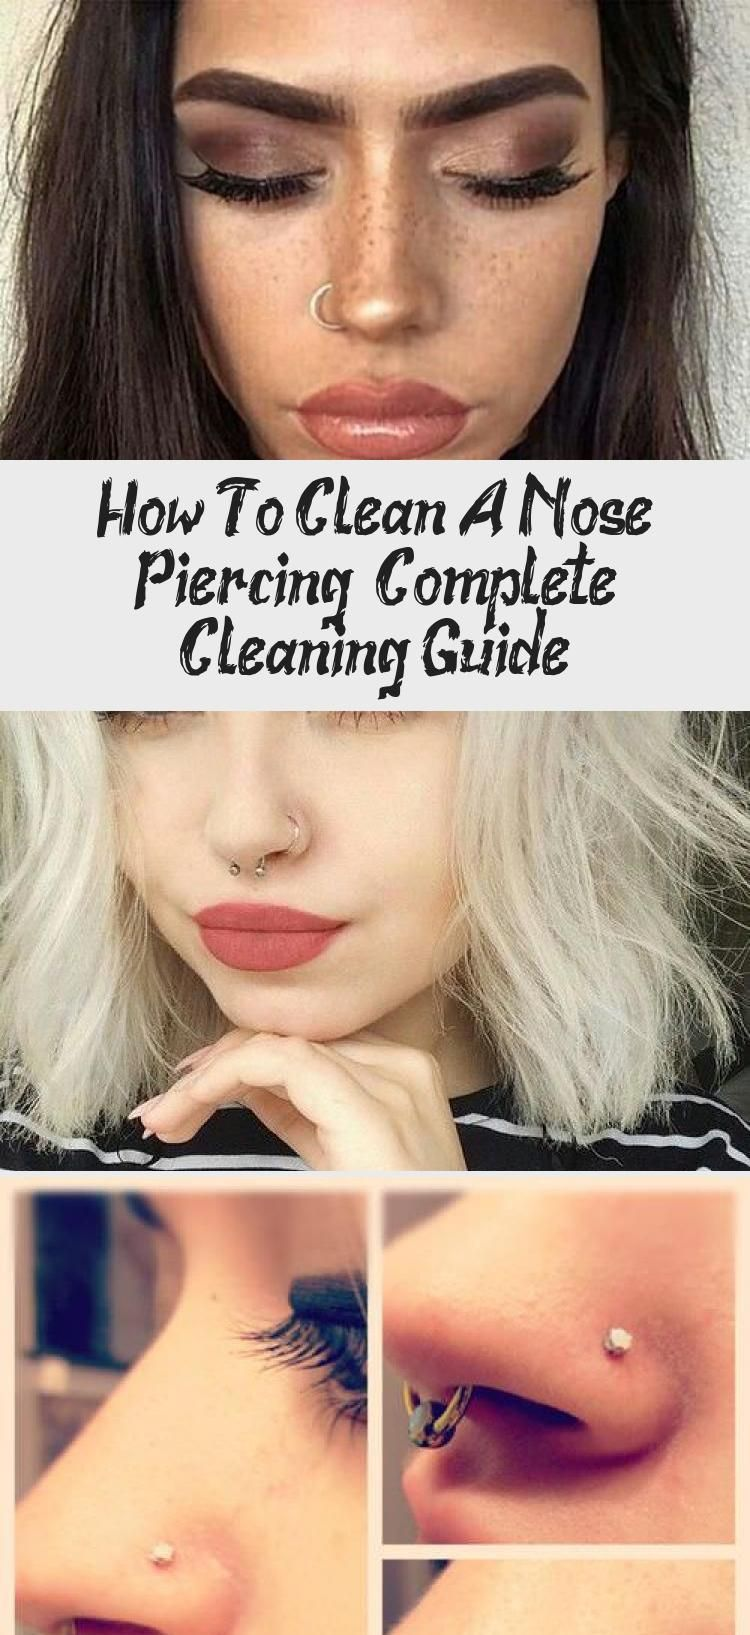 The ultimate guide to cleaning your new nose piercing